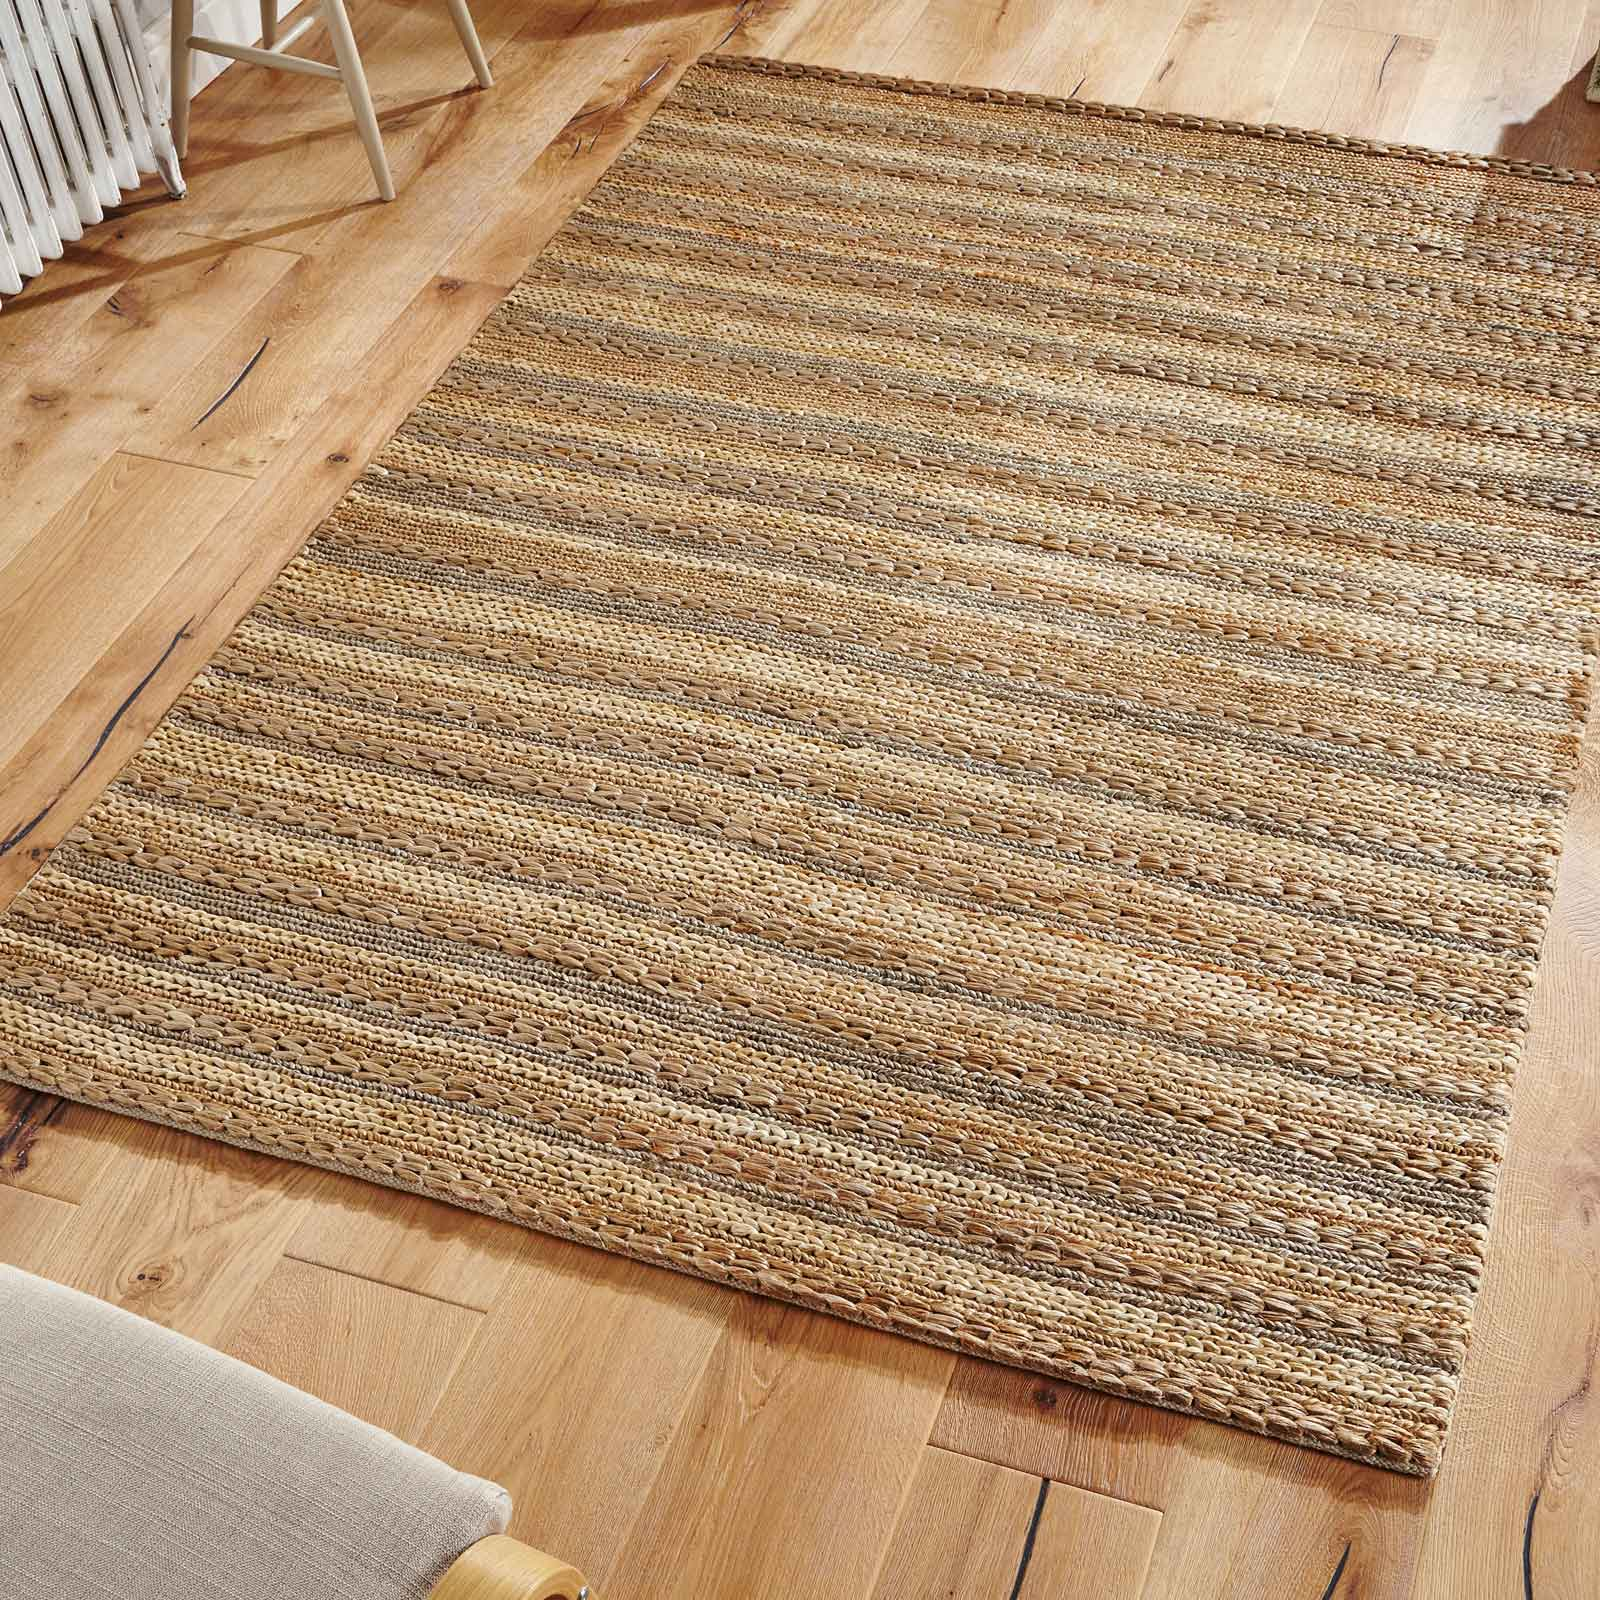 Crestwood Jute Rugs in Grey